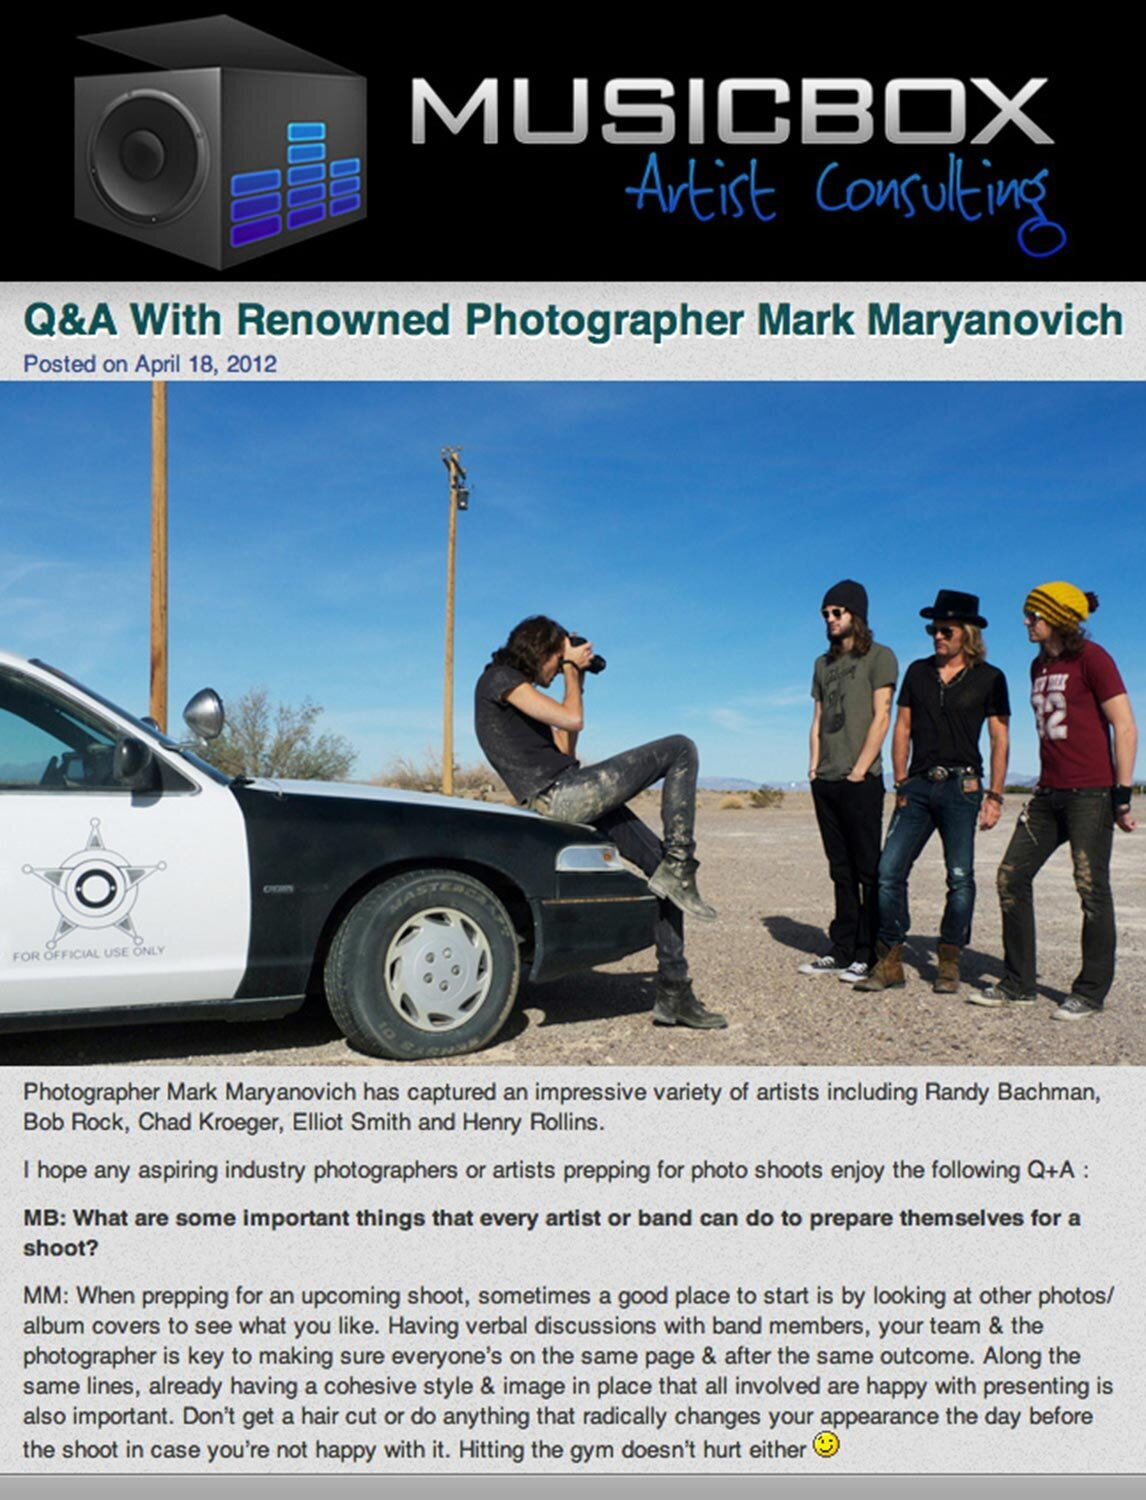 Interview with LA Photographer Mark Maryanovich Publication Musicbox Artist Consulting page 1 behind the scenes photo Mark taking portrait of three band members while sitting on hood of car